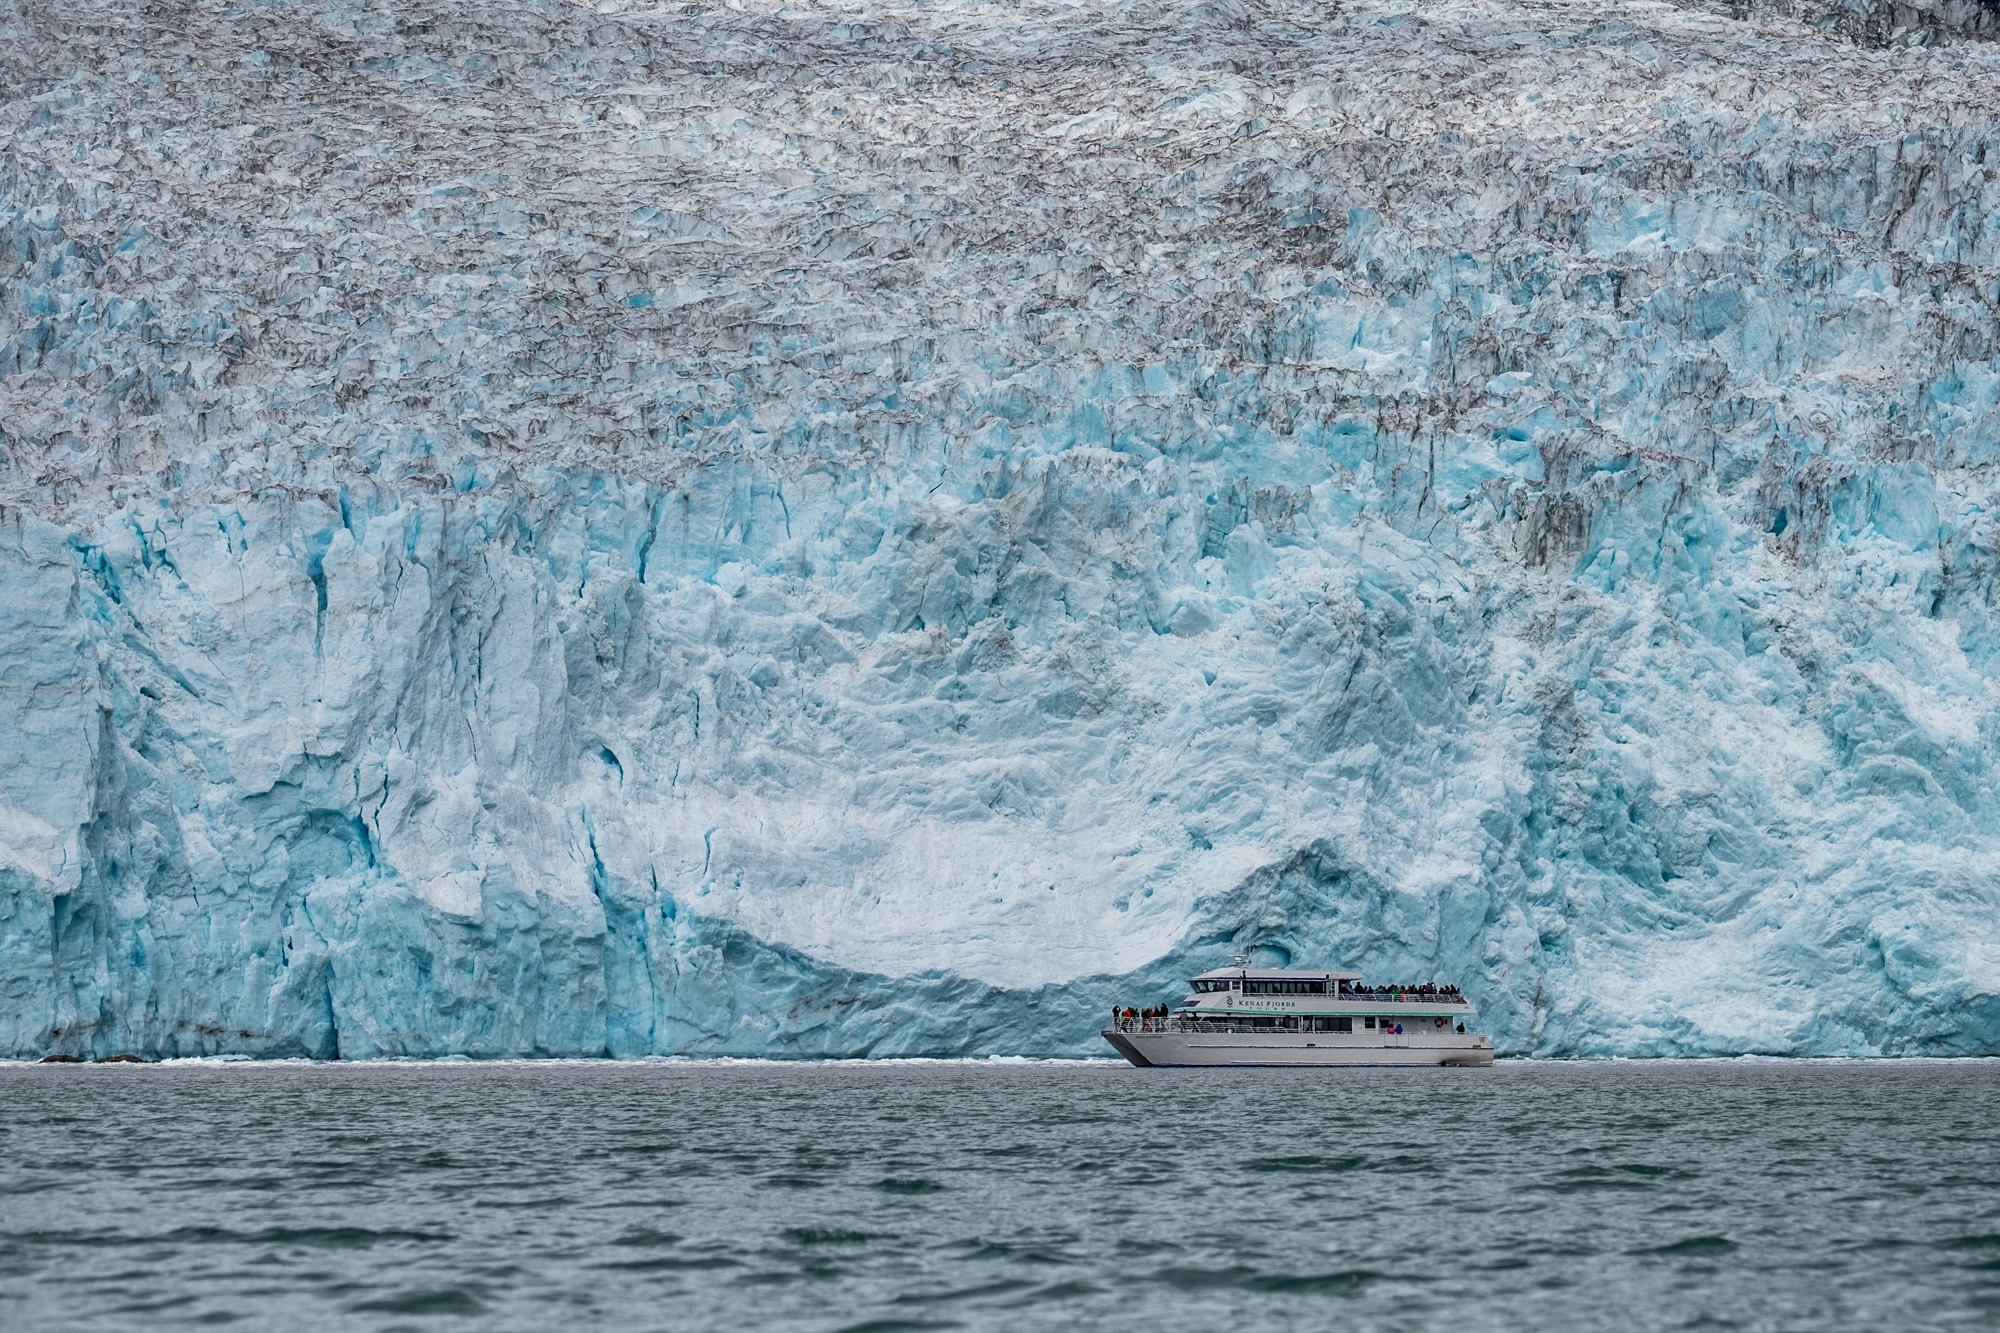 One of the coolest things to see near the Aialik Glacier is the perspective of size and scale that a large tour ship lends as it glides right aside the massive ice face.